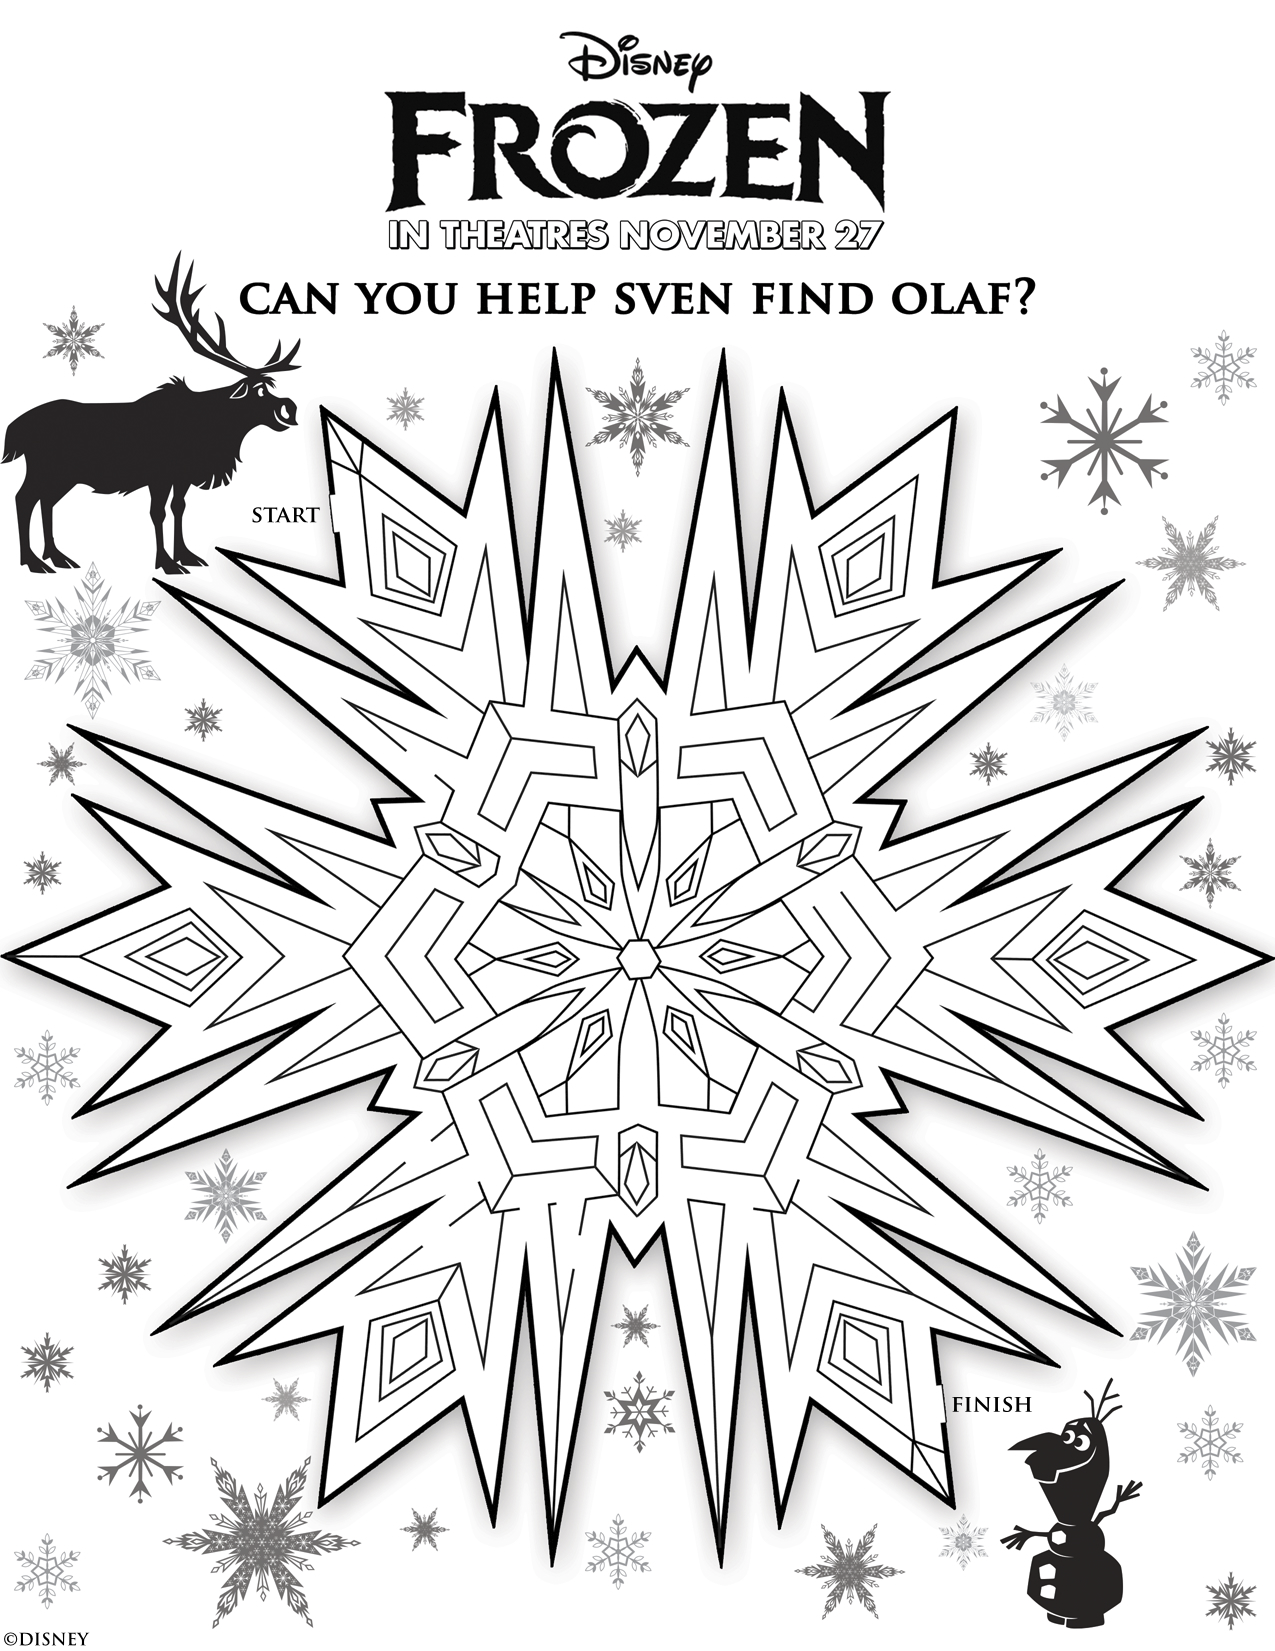 Frozen Movie Trailer and Free Printable Activity Sheets ...